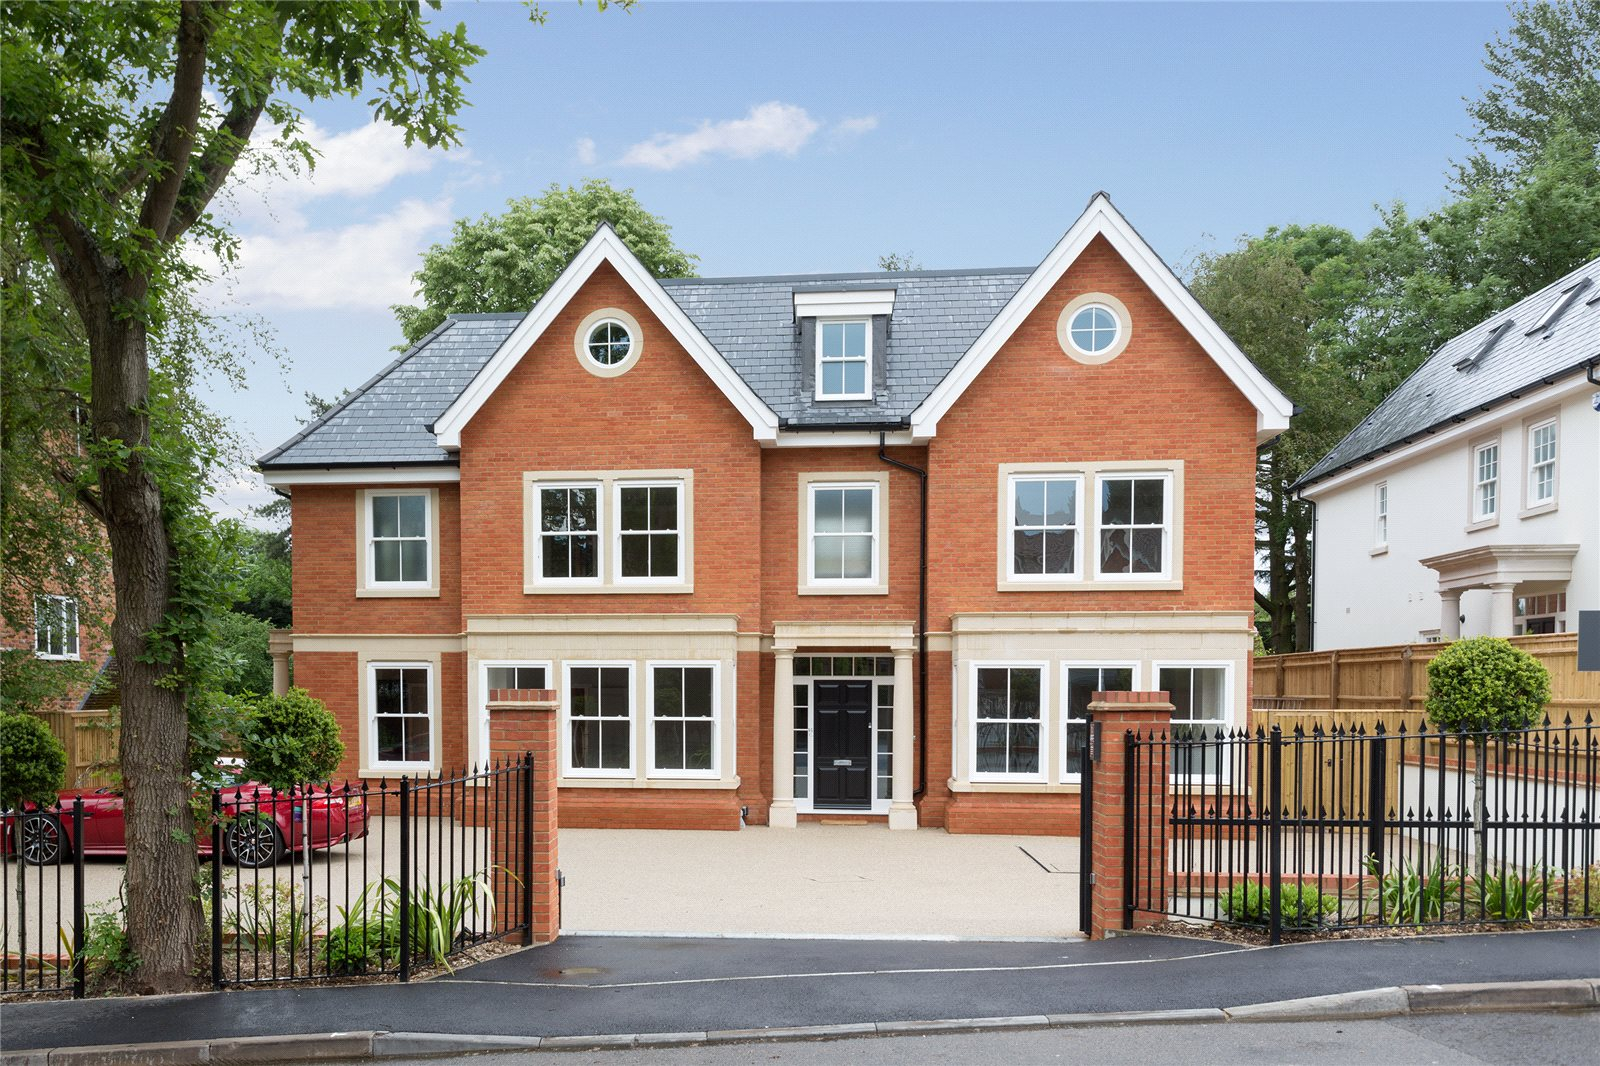 Moradia para Venda às Refined II, South Park Drive, Gerrards Cross, Buckinghamshire, SL9 Gerrards Cross, Inglaterra